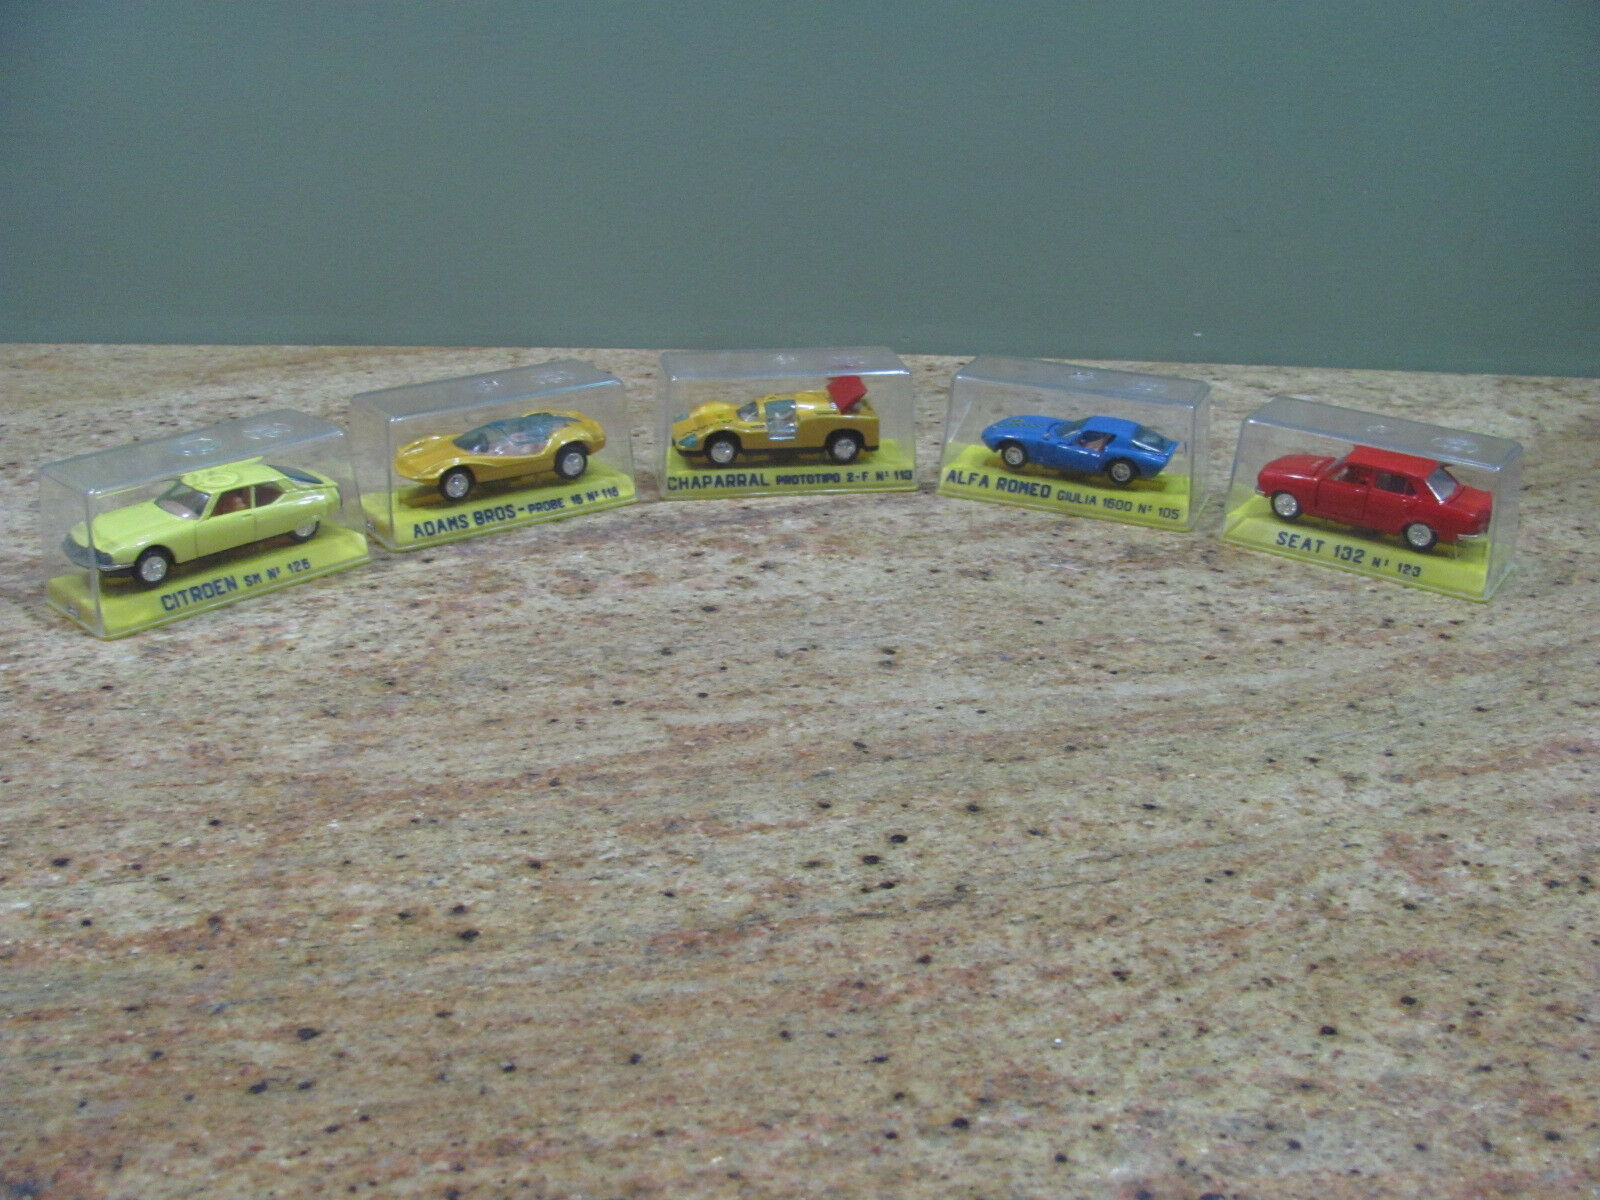 5 Vintage Joal Miniature Cars Made in Spain 1 43 Scale Incl. Alfa Romeo,USC